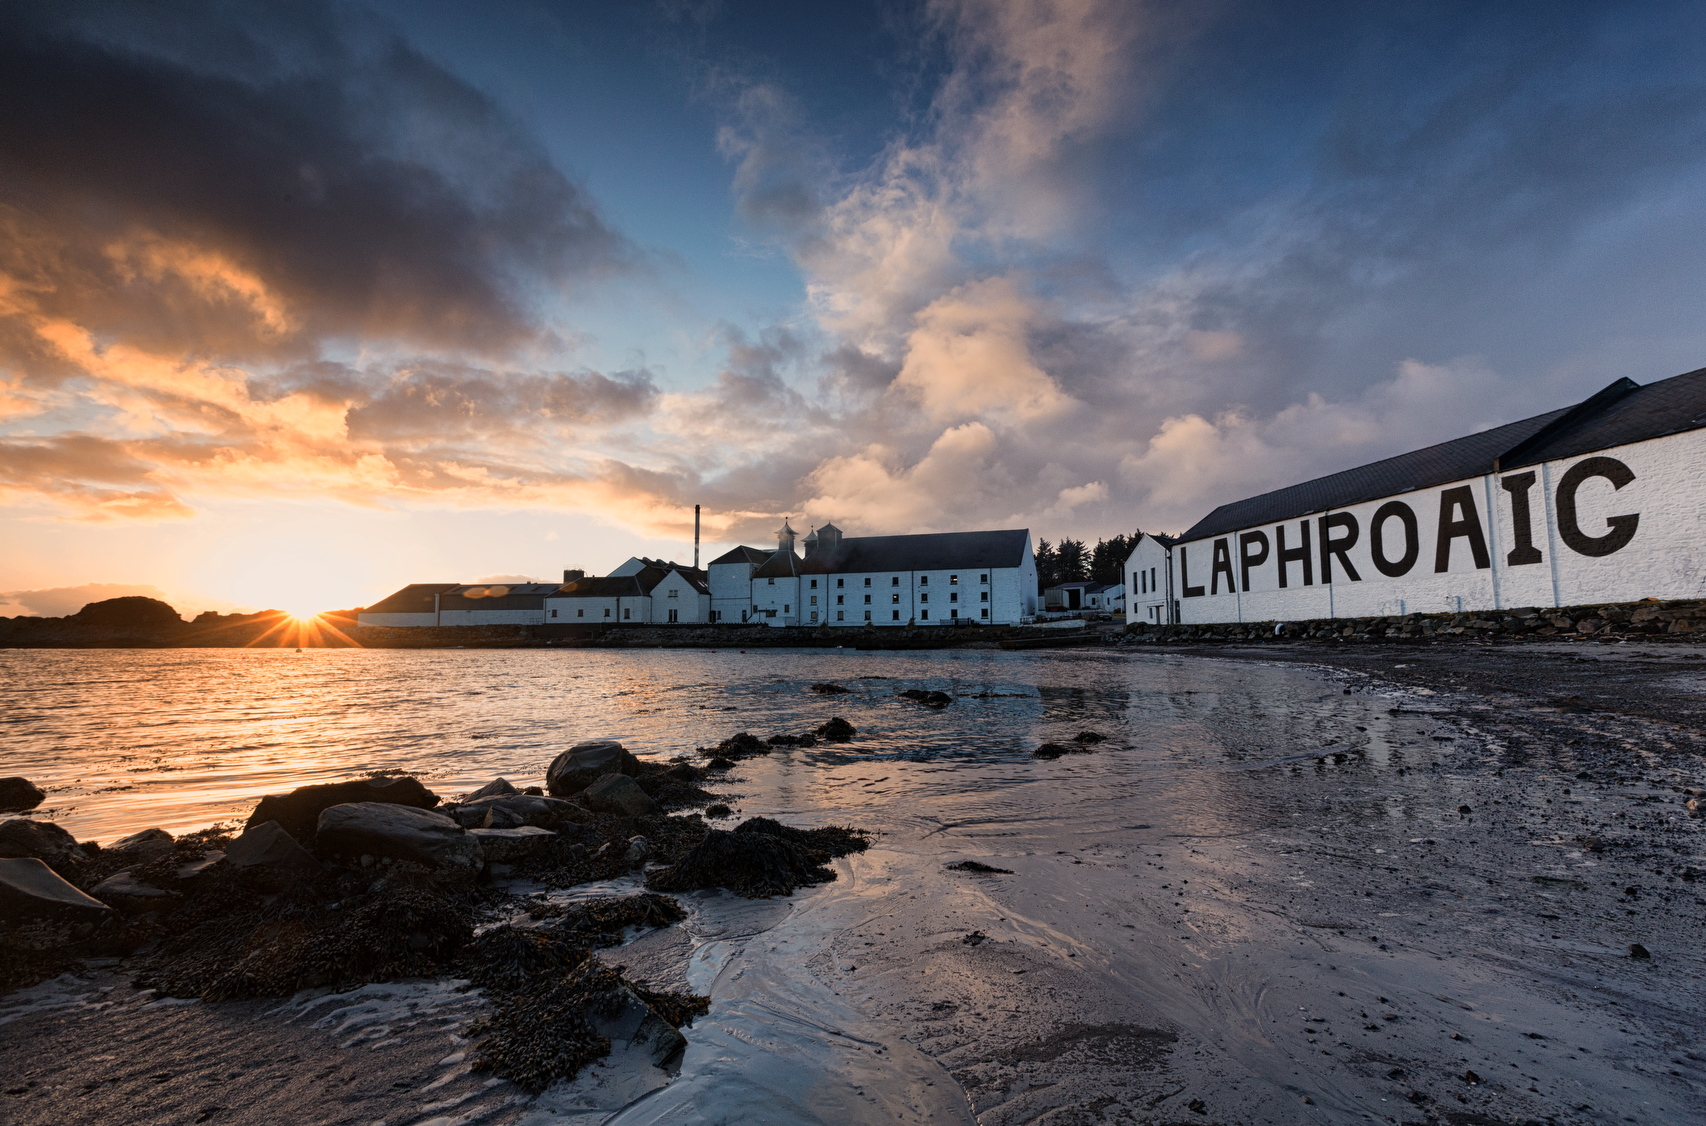 Laphroaig, Islay, Scotland.